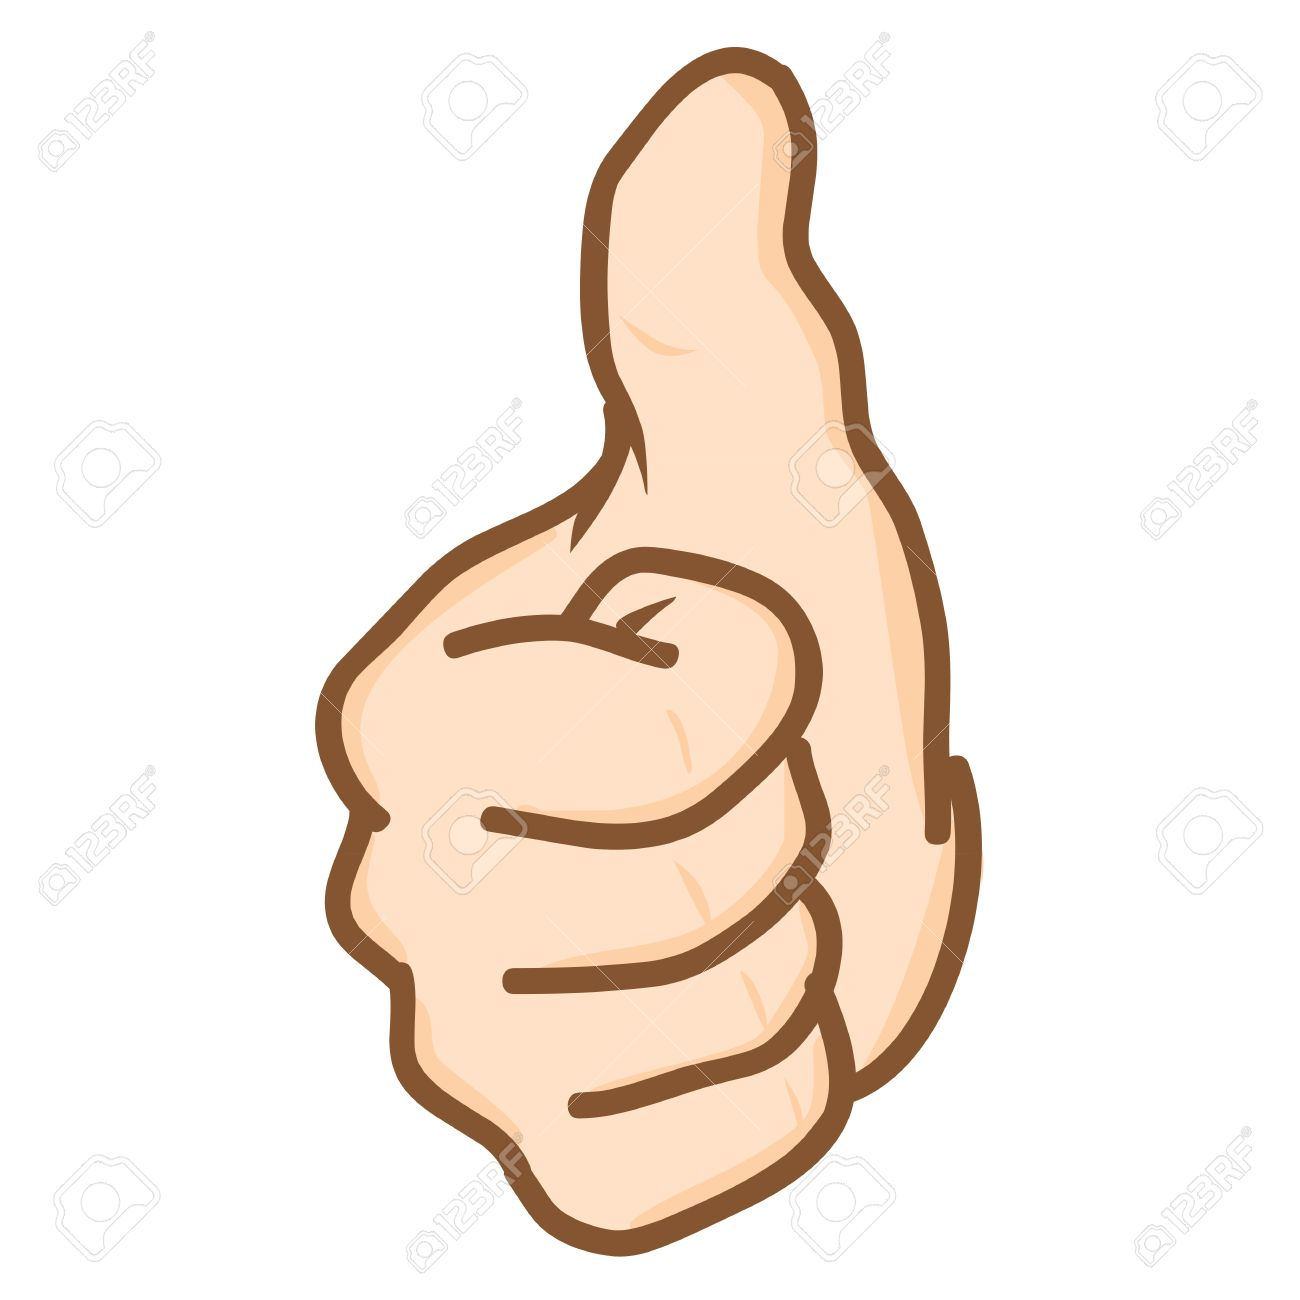 hand draw hand thumbs up vector royalty free cliparts vectors and rh 123rf com thumbs up vector image thumbs up vector free